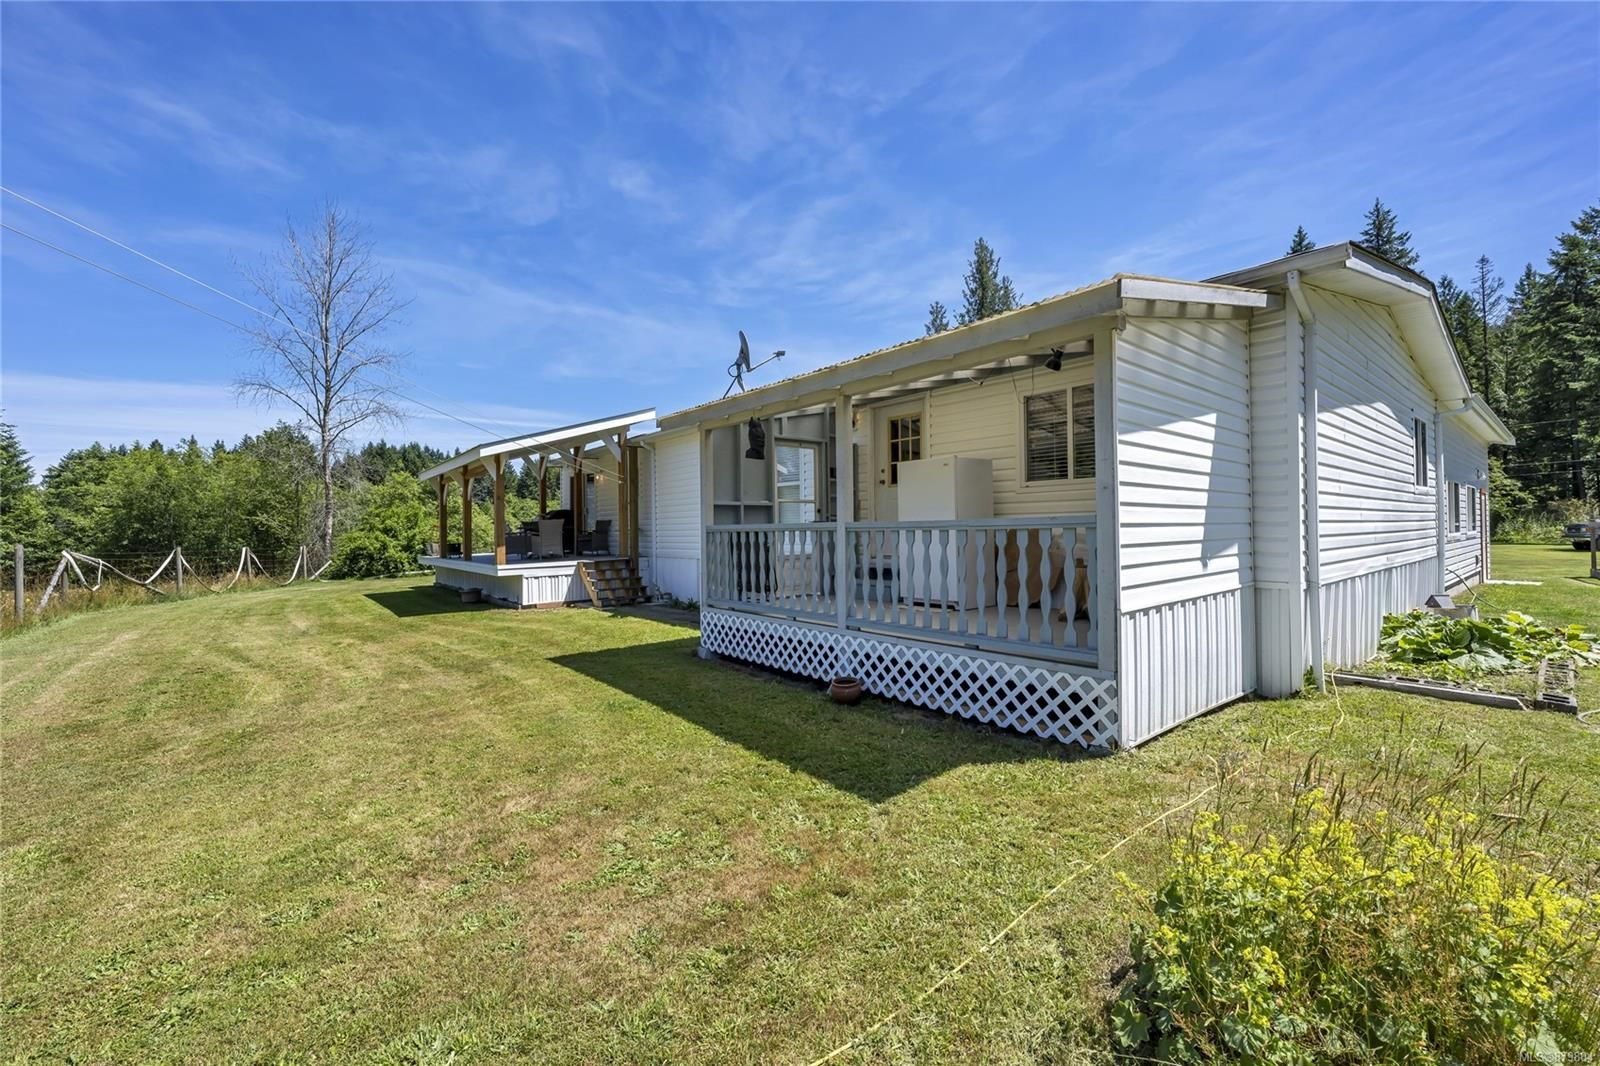 Photo 54: Photos: 3596 Riverside Rd in : ML Cobble Hill Manufactured Home for sale (Malahat & Area)  : MLS®# 879804